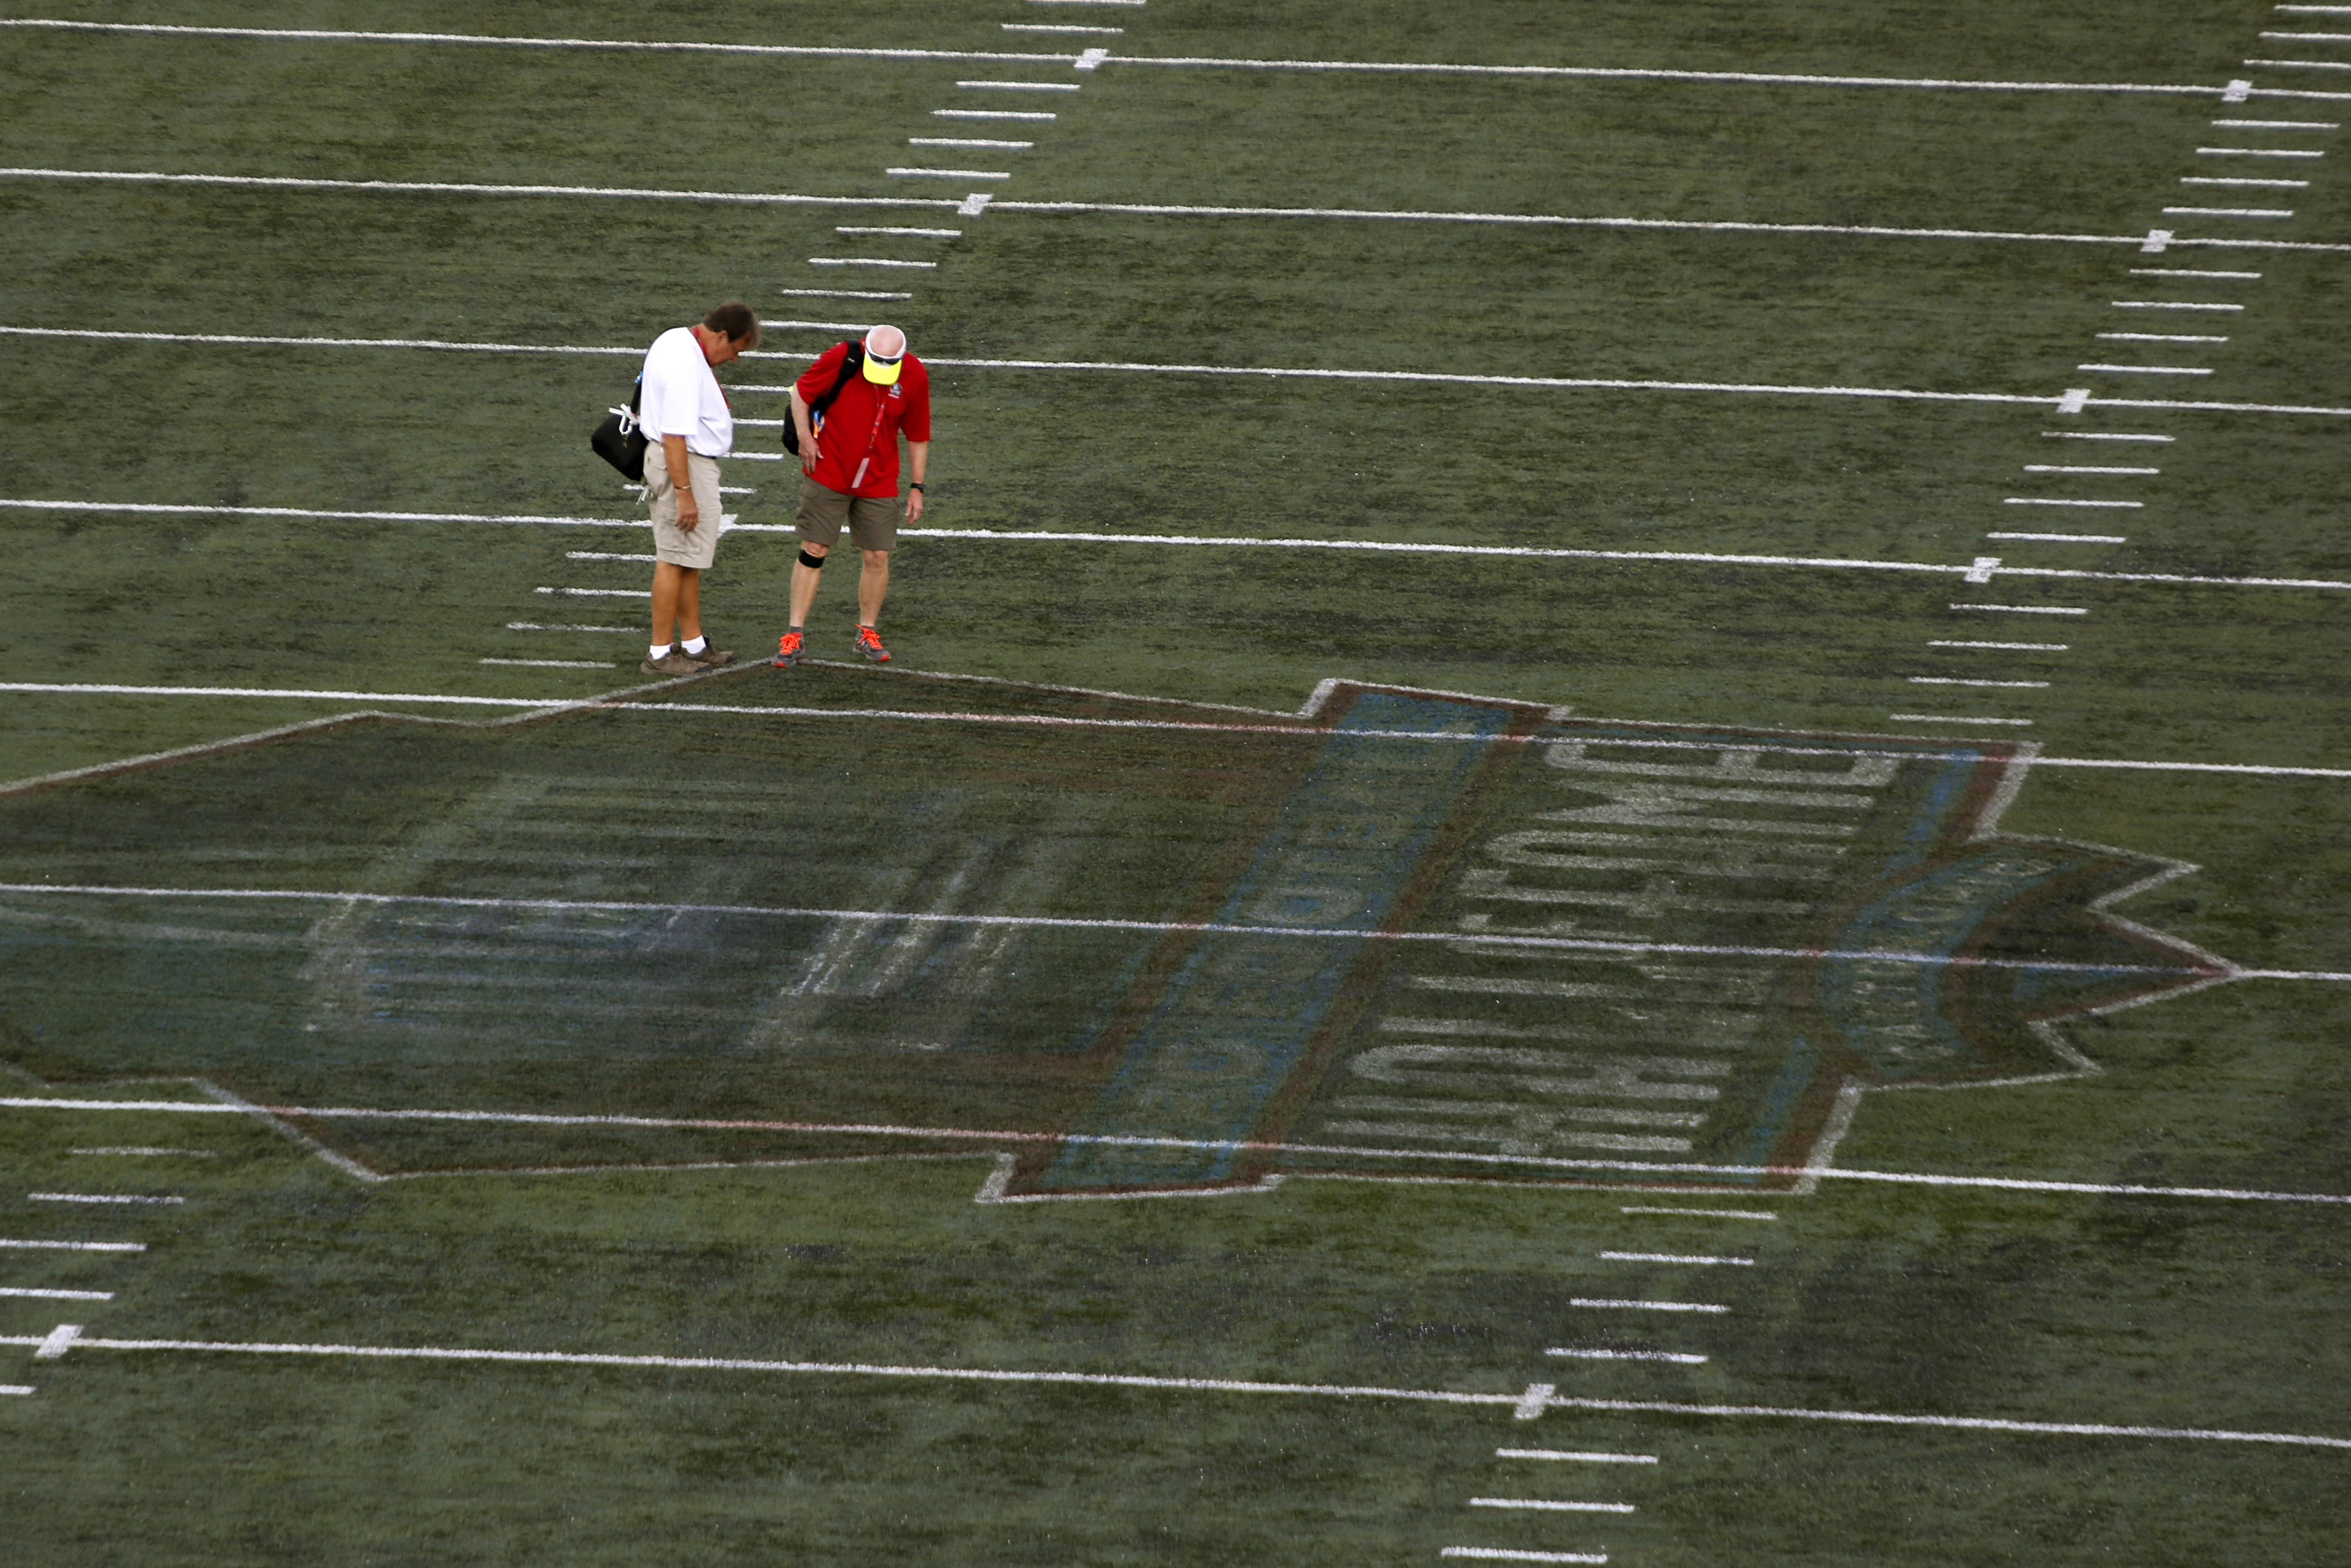 The damaged field at Tom Benson Hall of Fame Stadium is inspected after the preseason NFL football game was cancelled due to unsafe field conditions caused by the painted logo at midfield, Sunday, Aug. 7, 2016, in Canton, Ohio. (AP Photo/Gene J. Puskar)